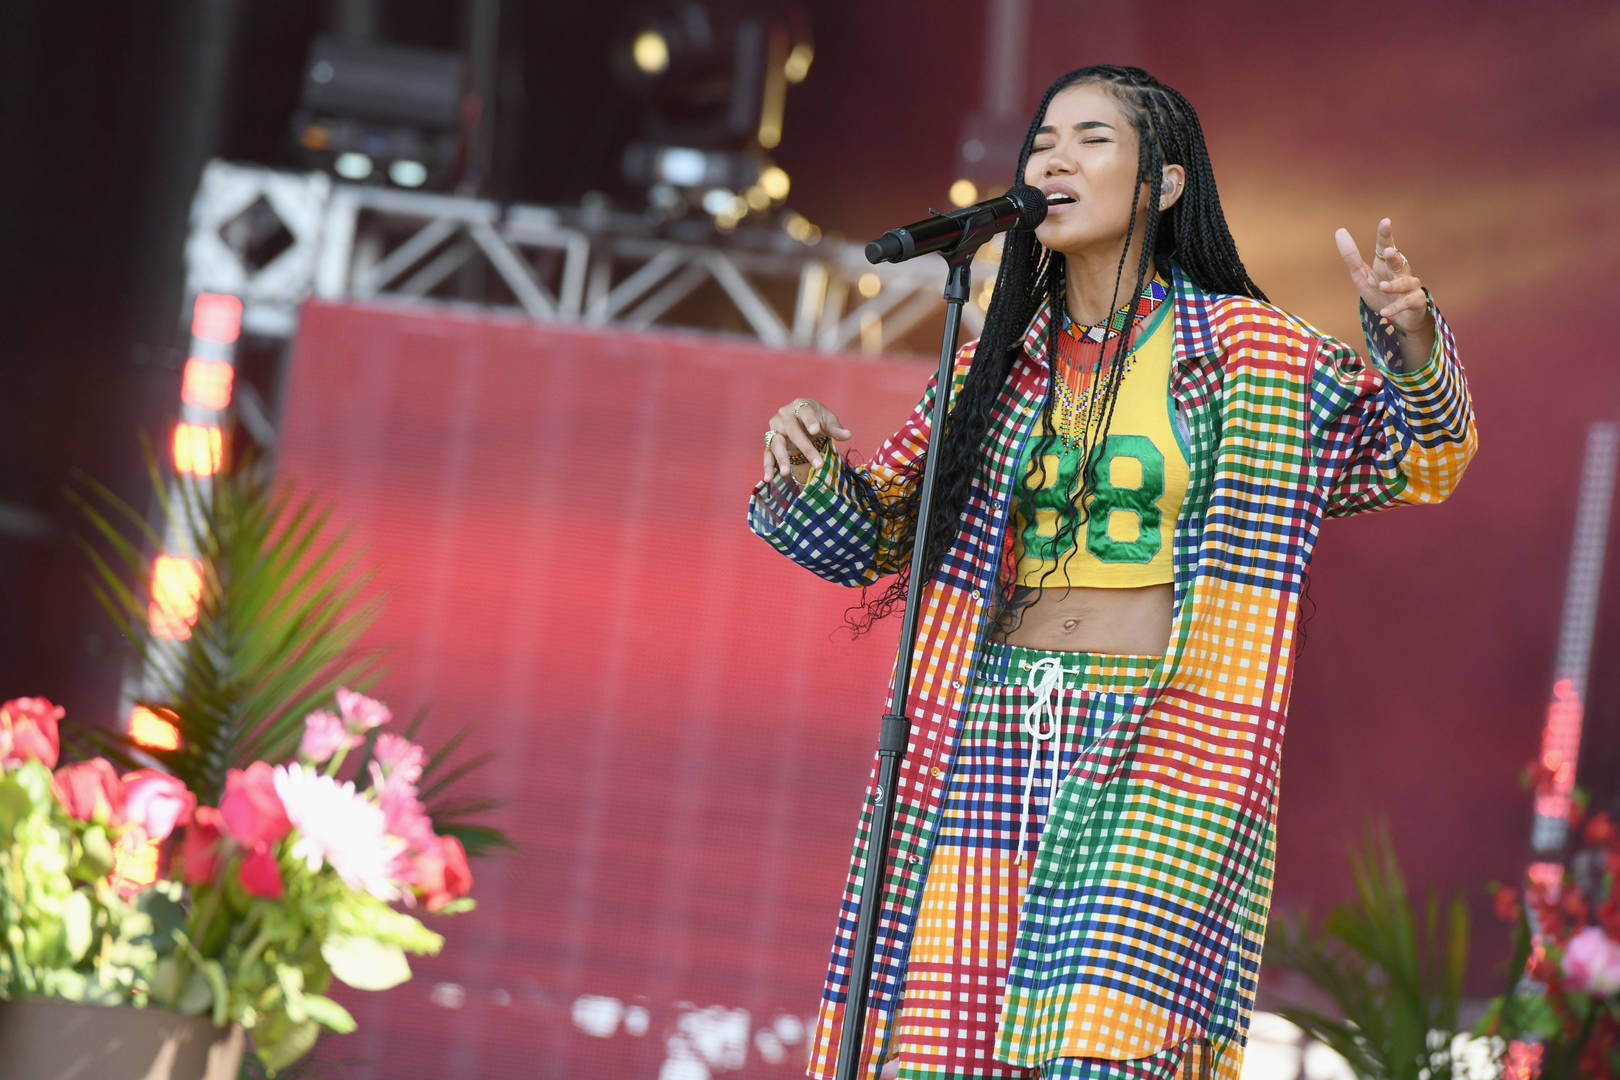 """Jhené Aiko Future Miguel """"Happiness Over Everything (H.O.E.)"""" The Ellen Degeneres Show performance watch song Chilombo"""